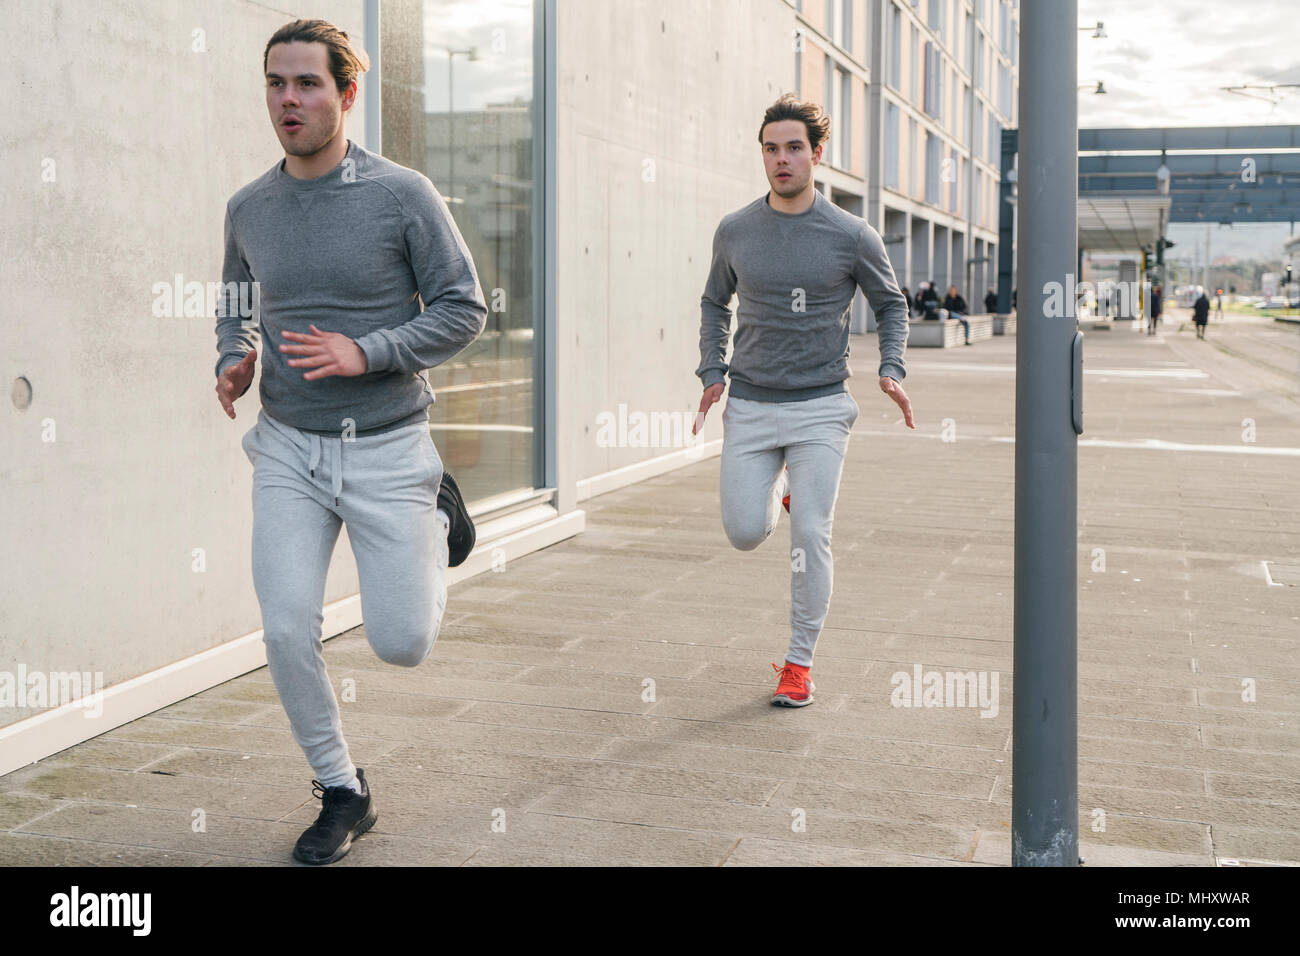 Young adult male twin runners, running along city sidewalk - Stock Image